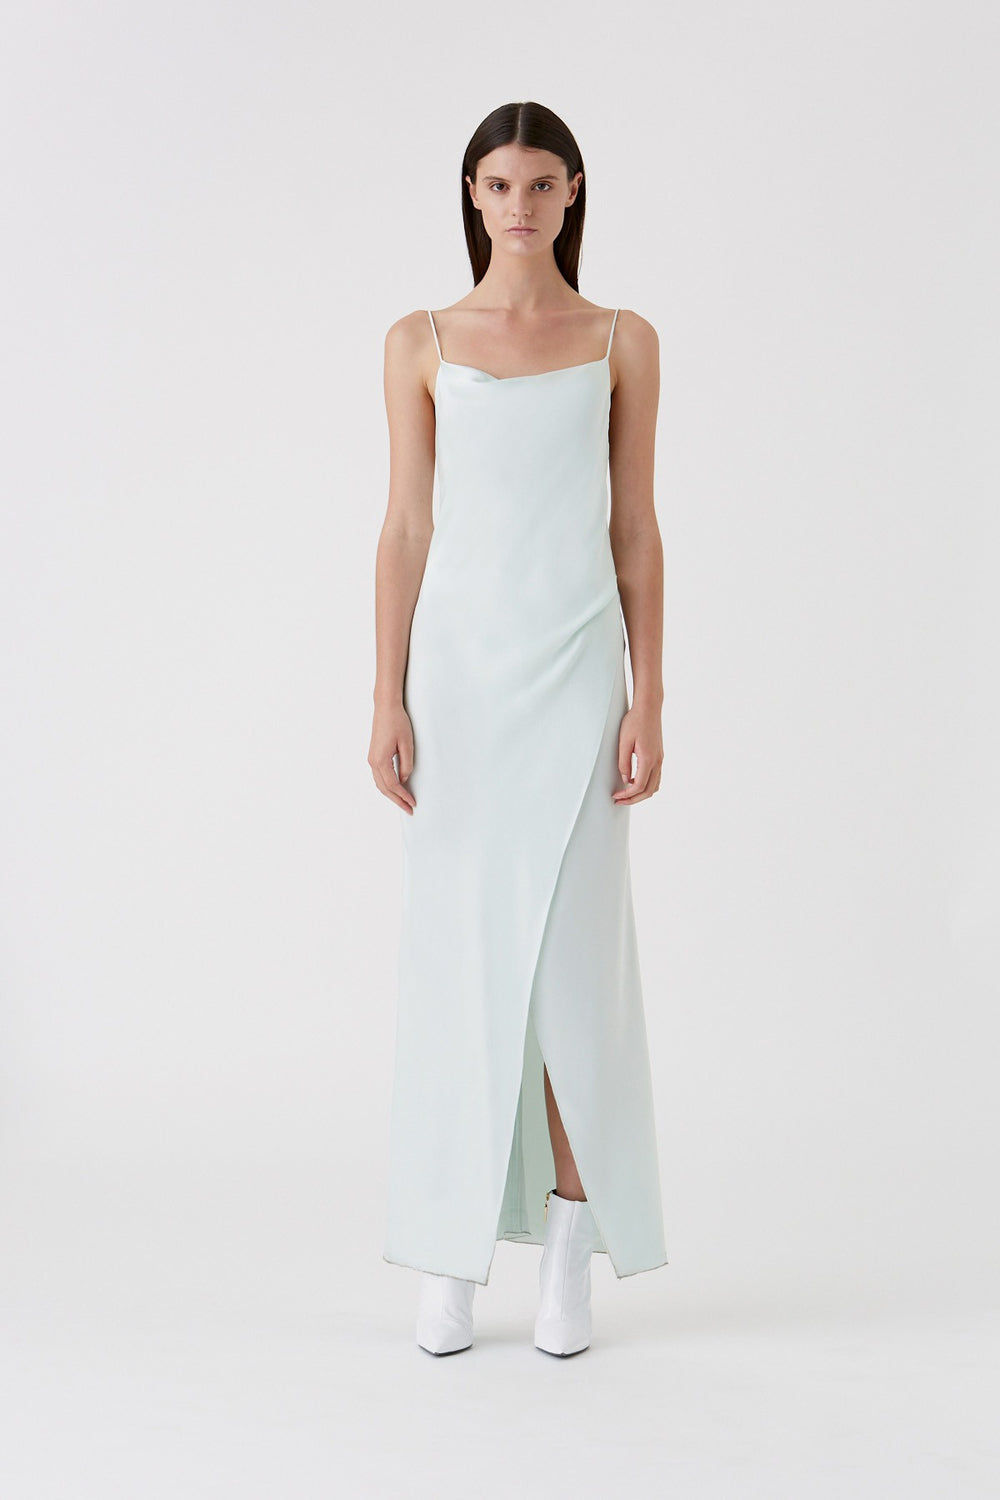 The Bowery Slip Dress in Ice Mint by CAMILLA AND MARC